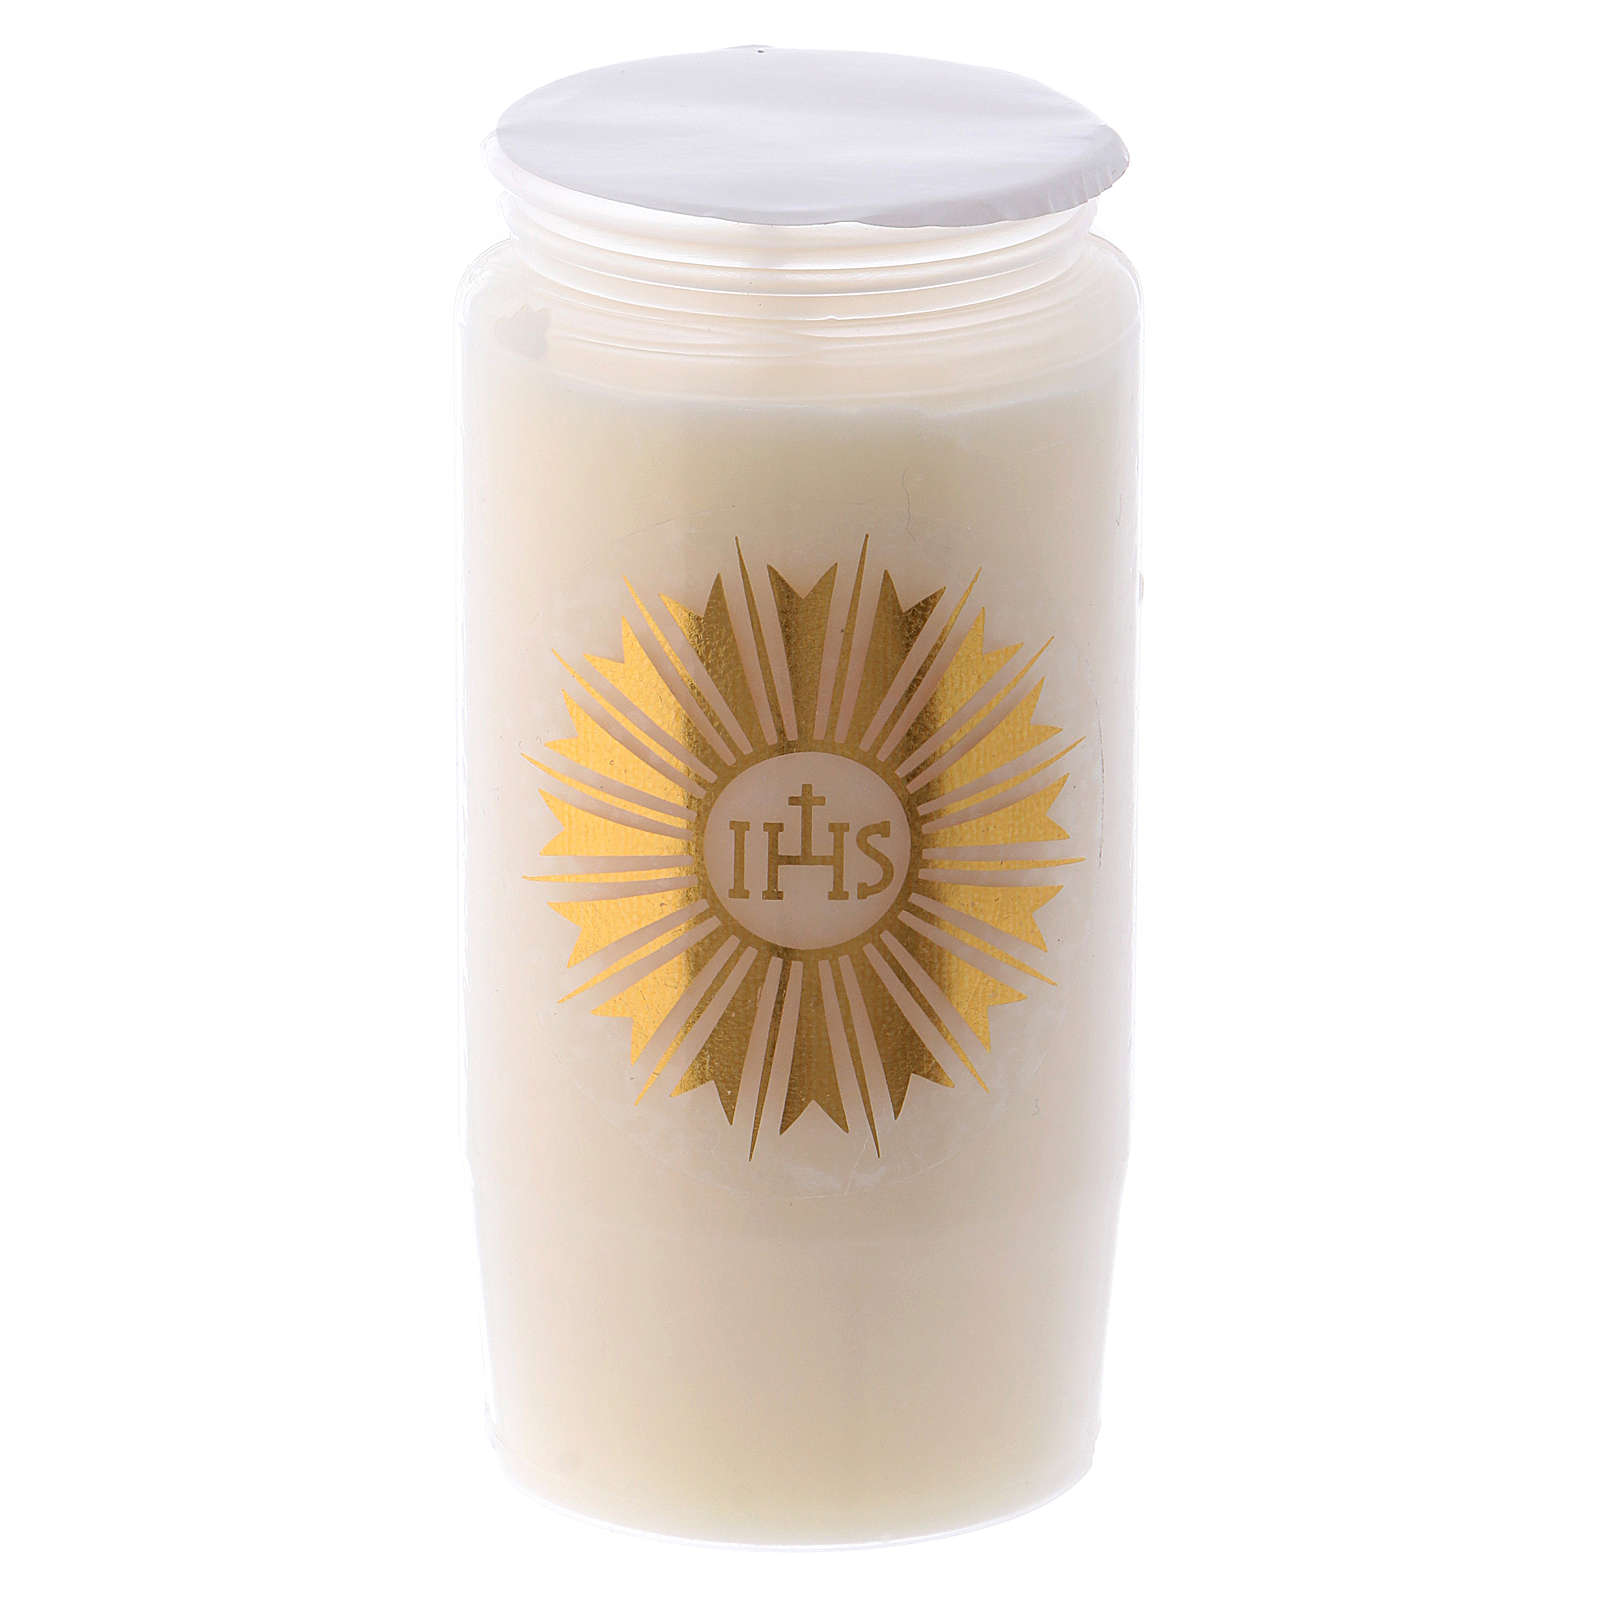 IHS Sanctuary candle in white PVC - 2 days 3